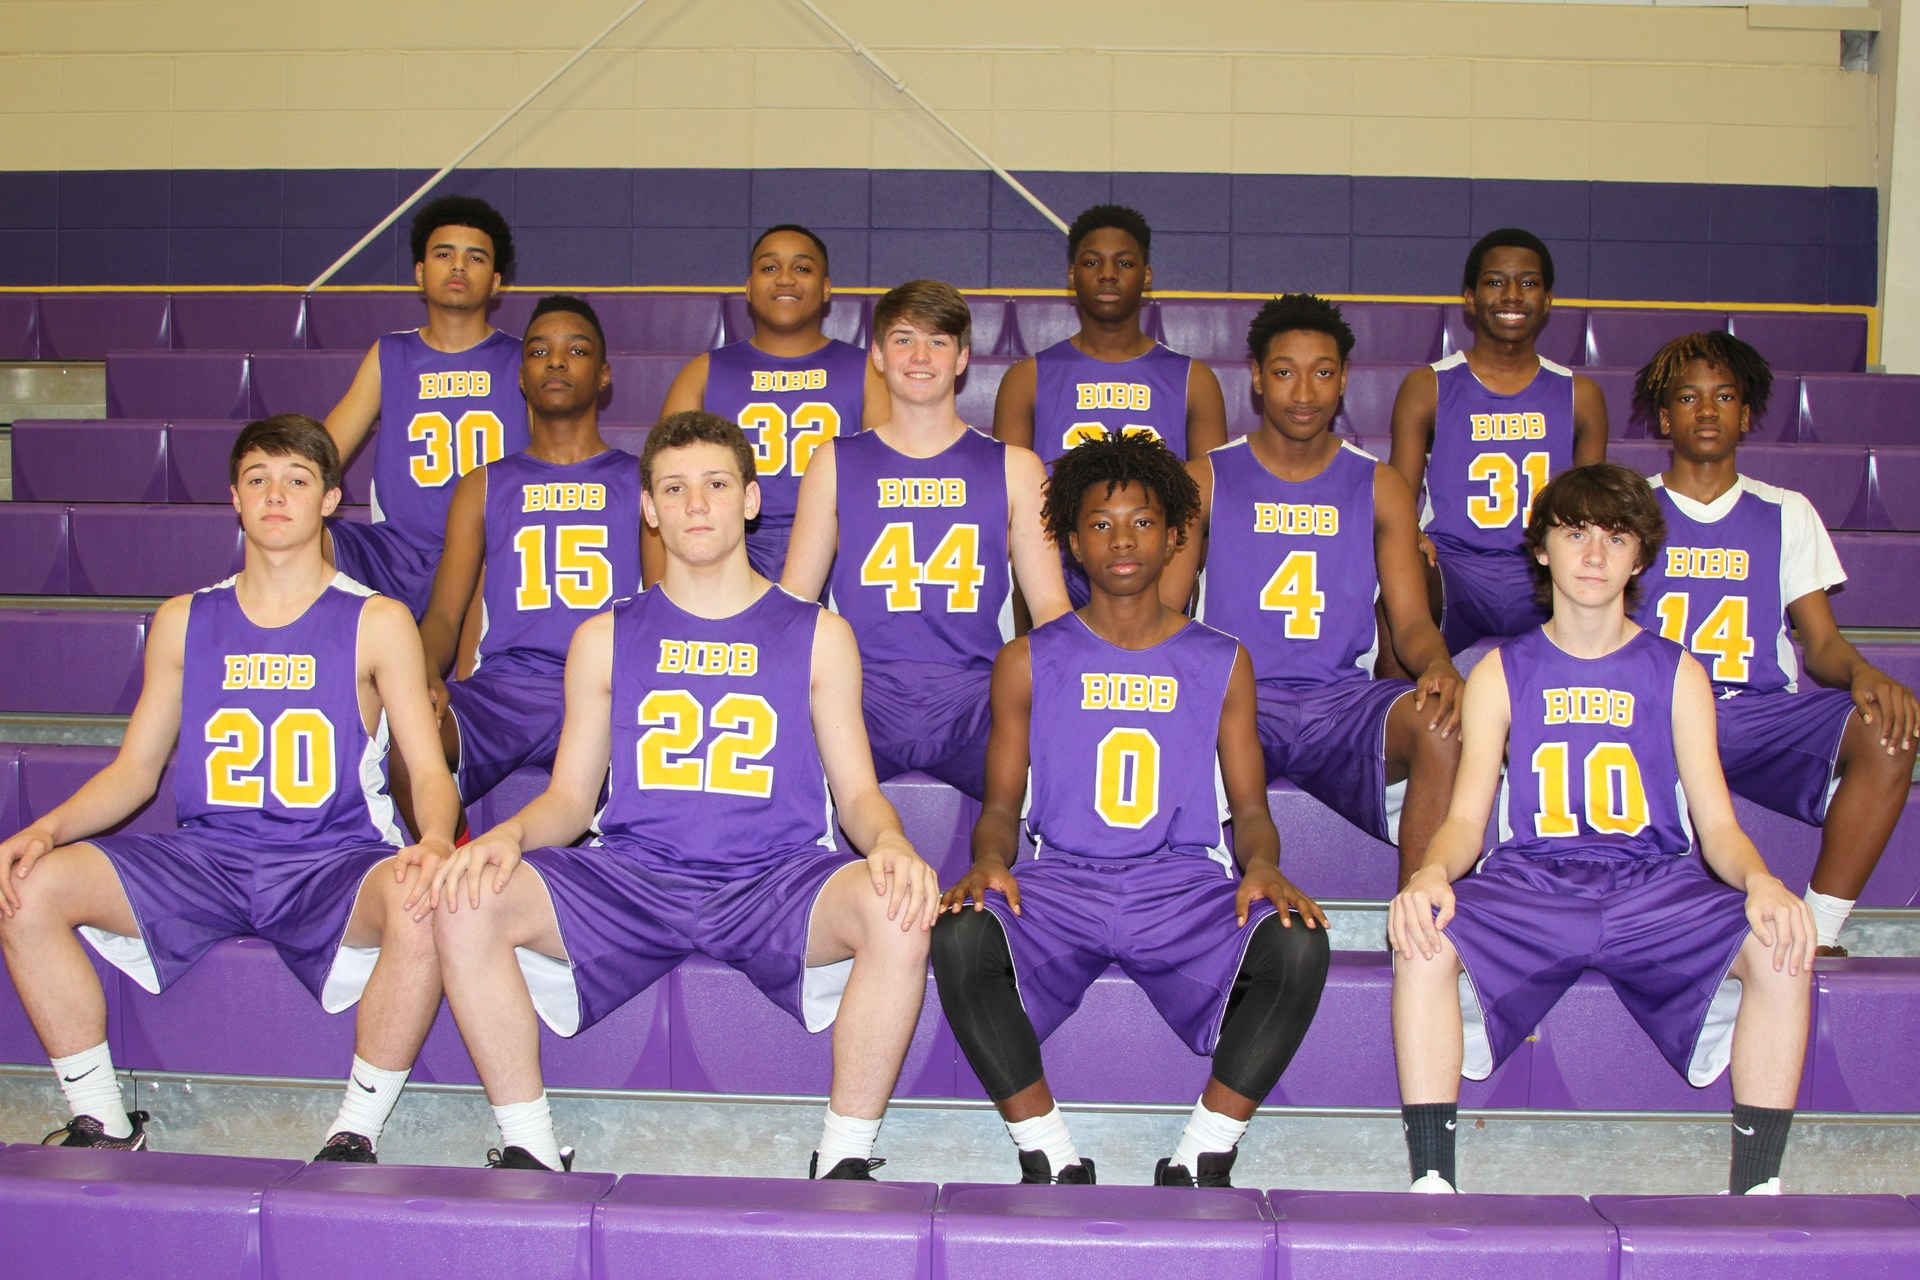 Bibb County High School Basketball players in uniform seated on bleachers in the gym